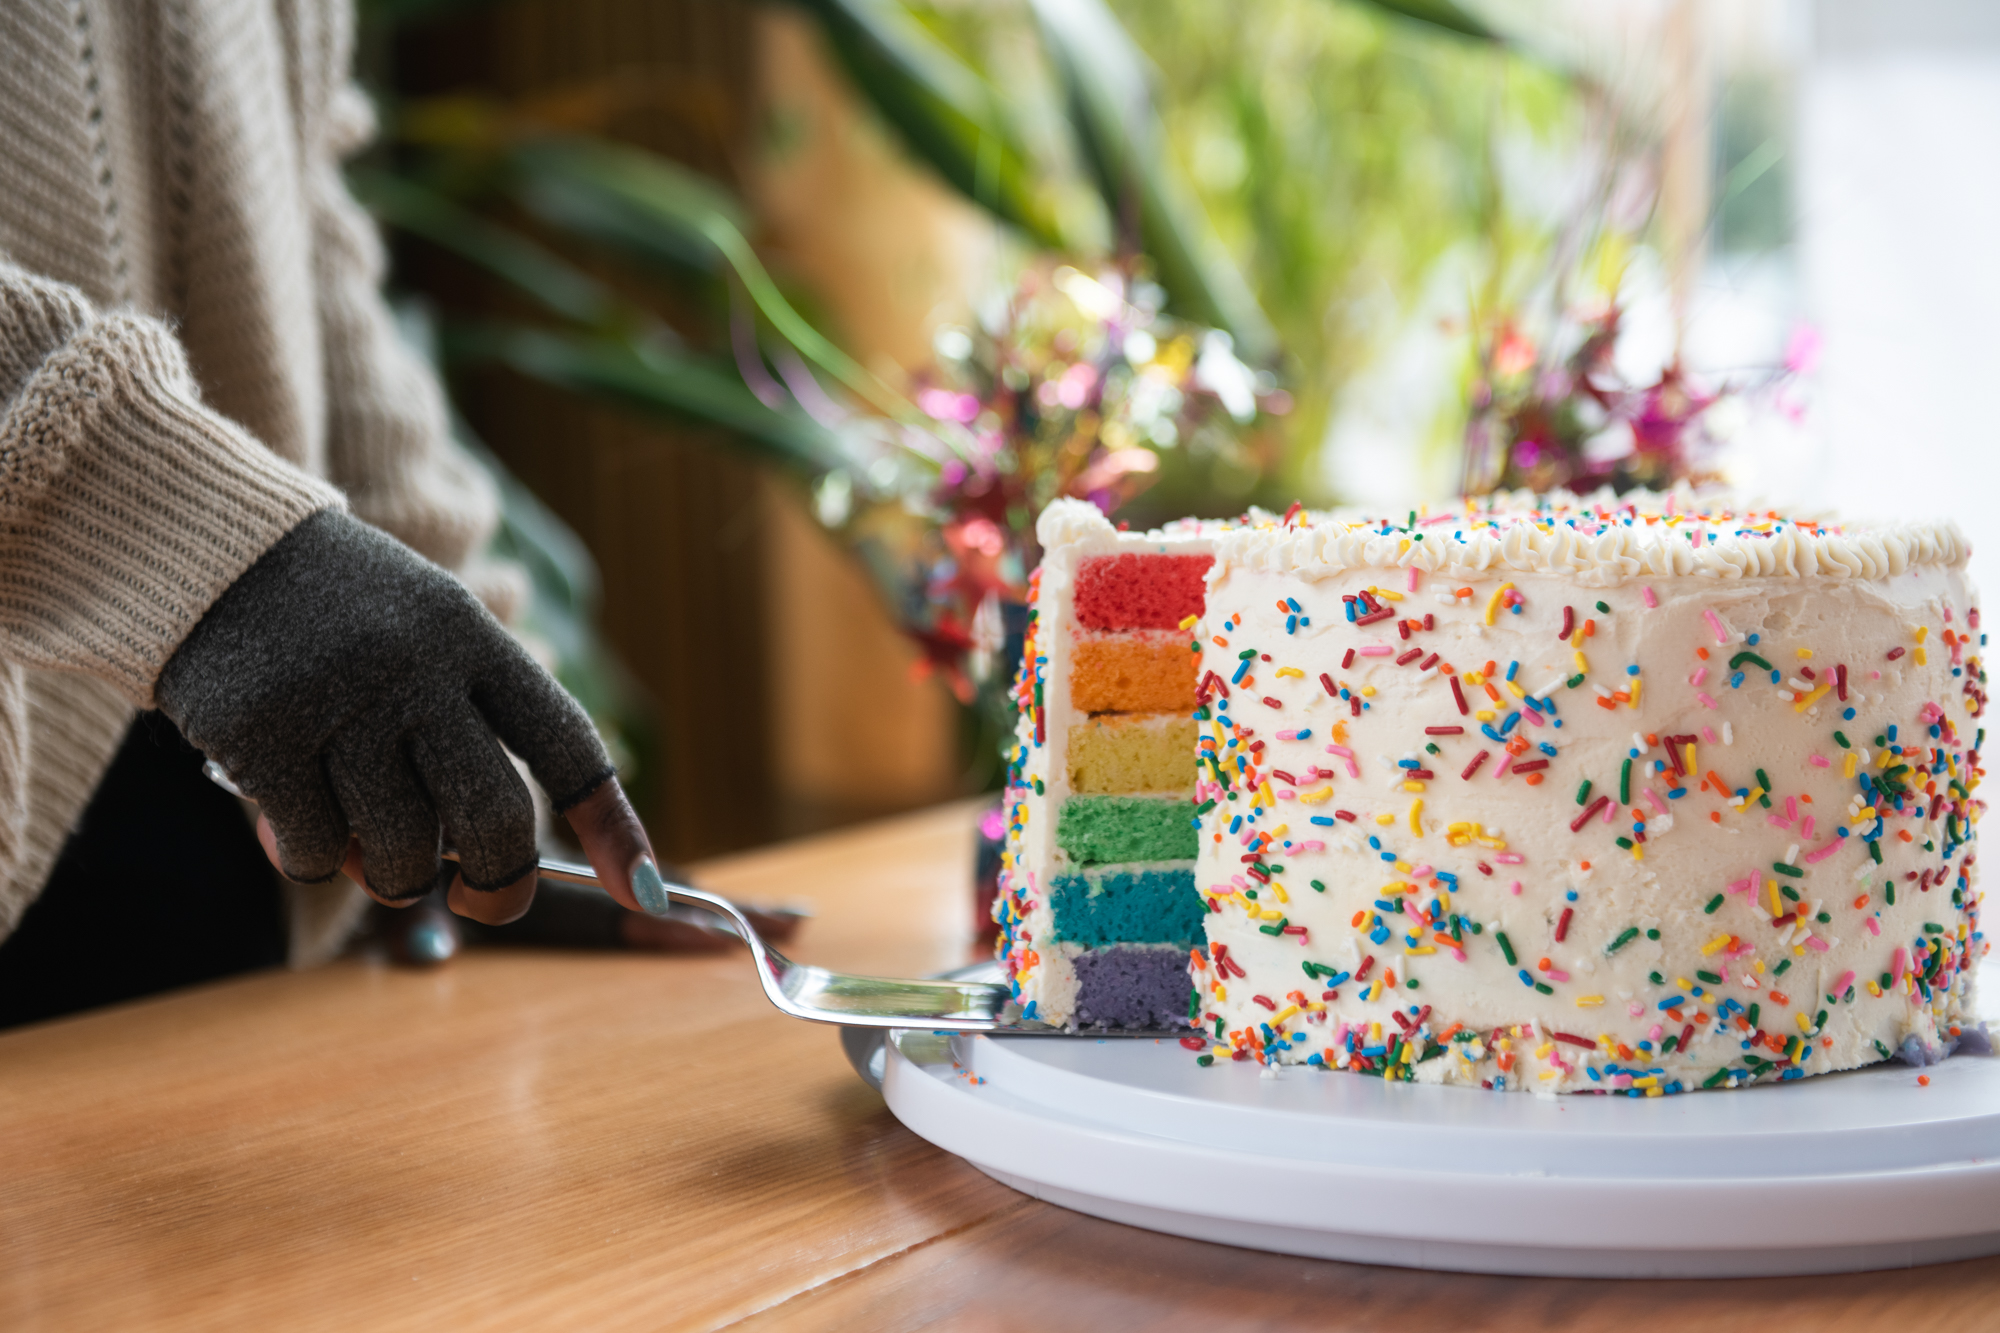 A gloved hand sliced a cake with rainbow layers on the inside and sprinkles on the outside